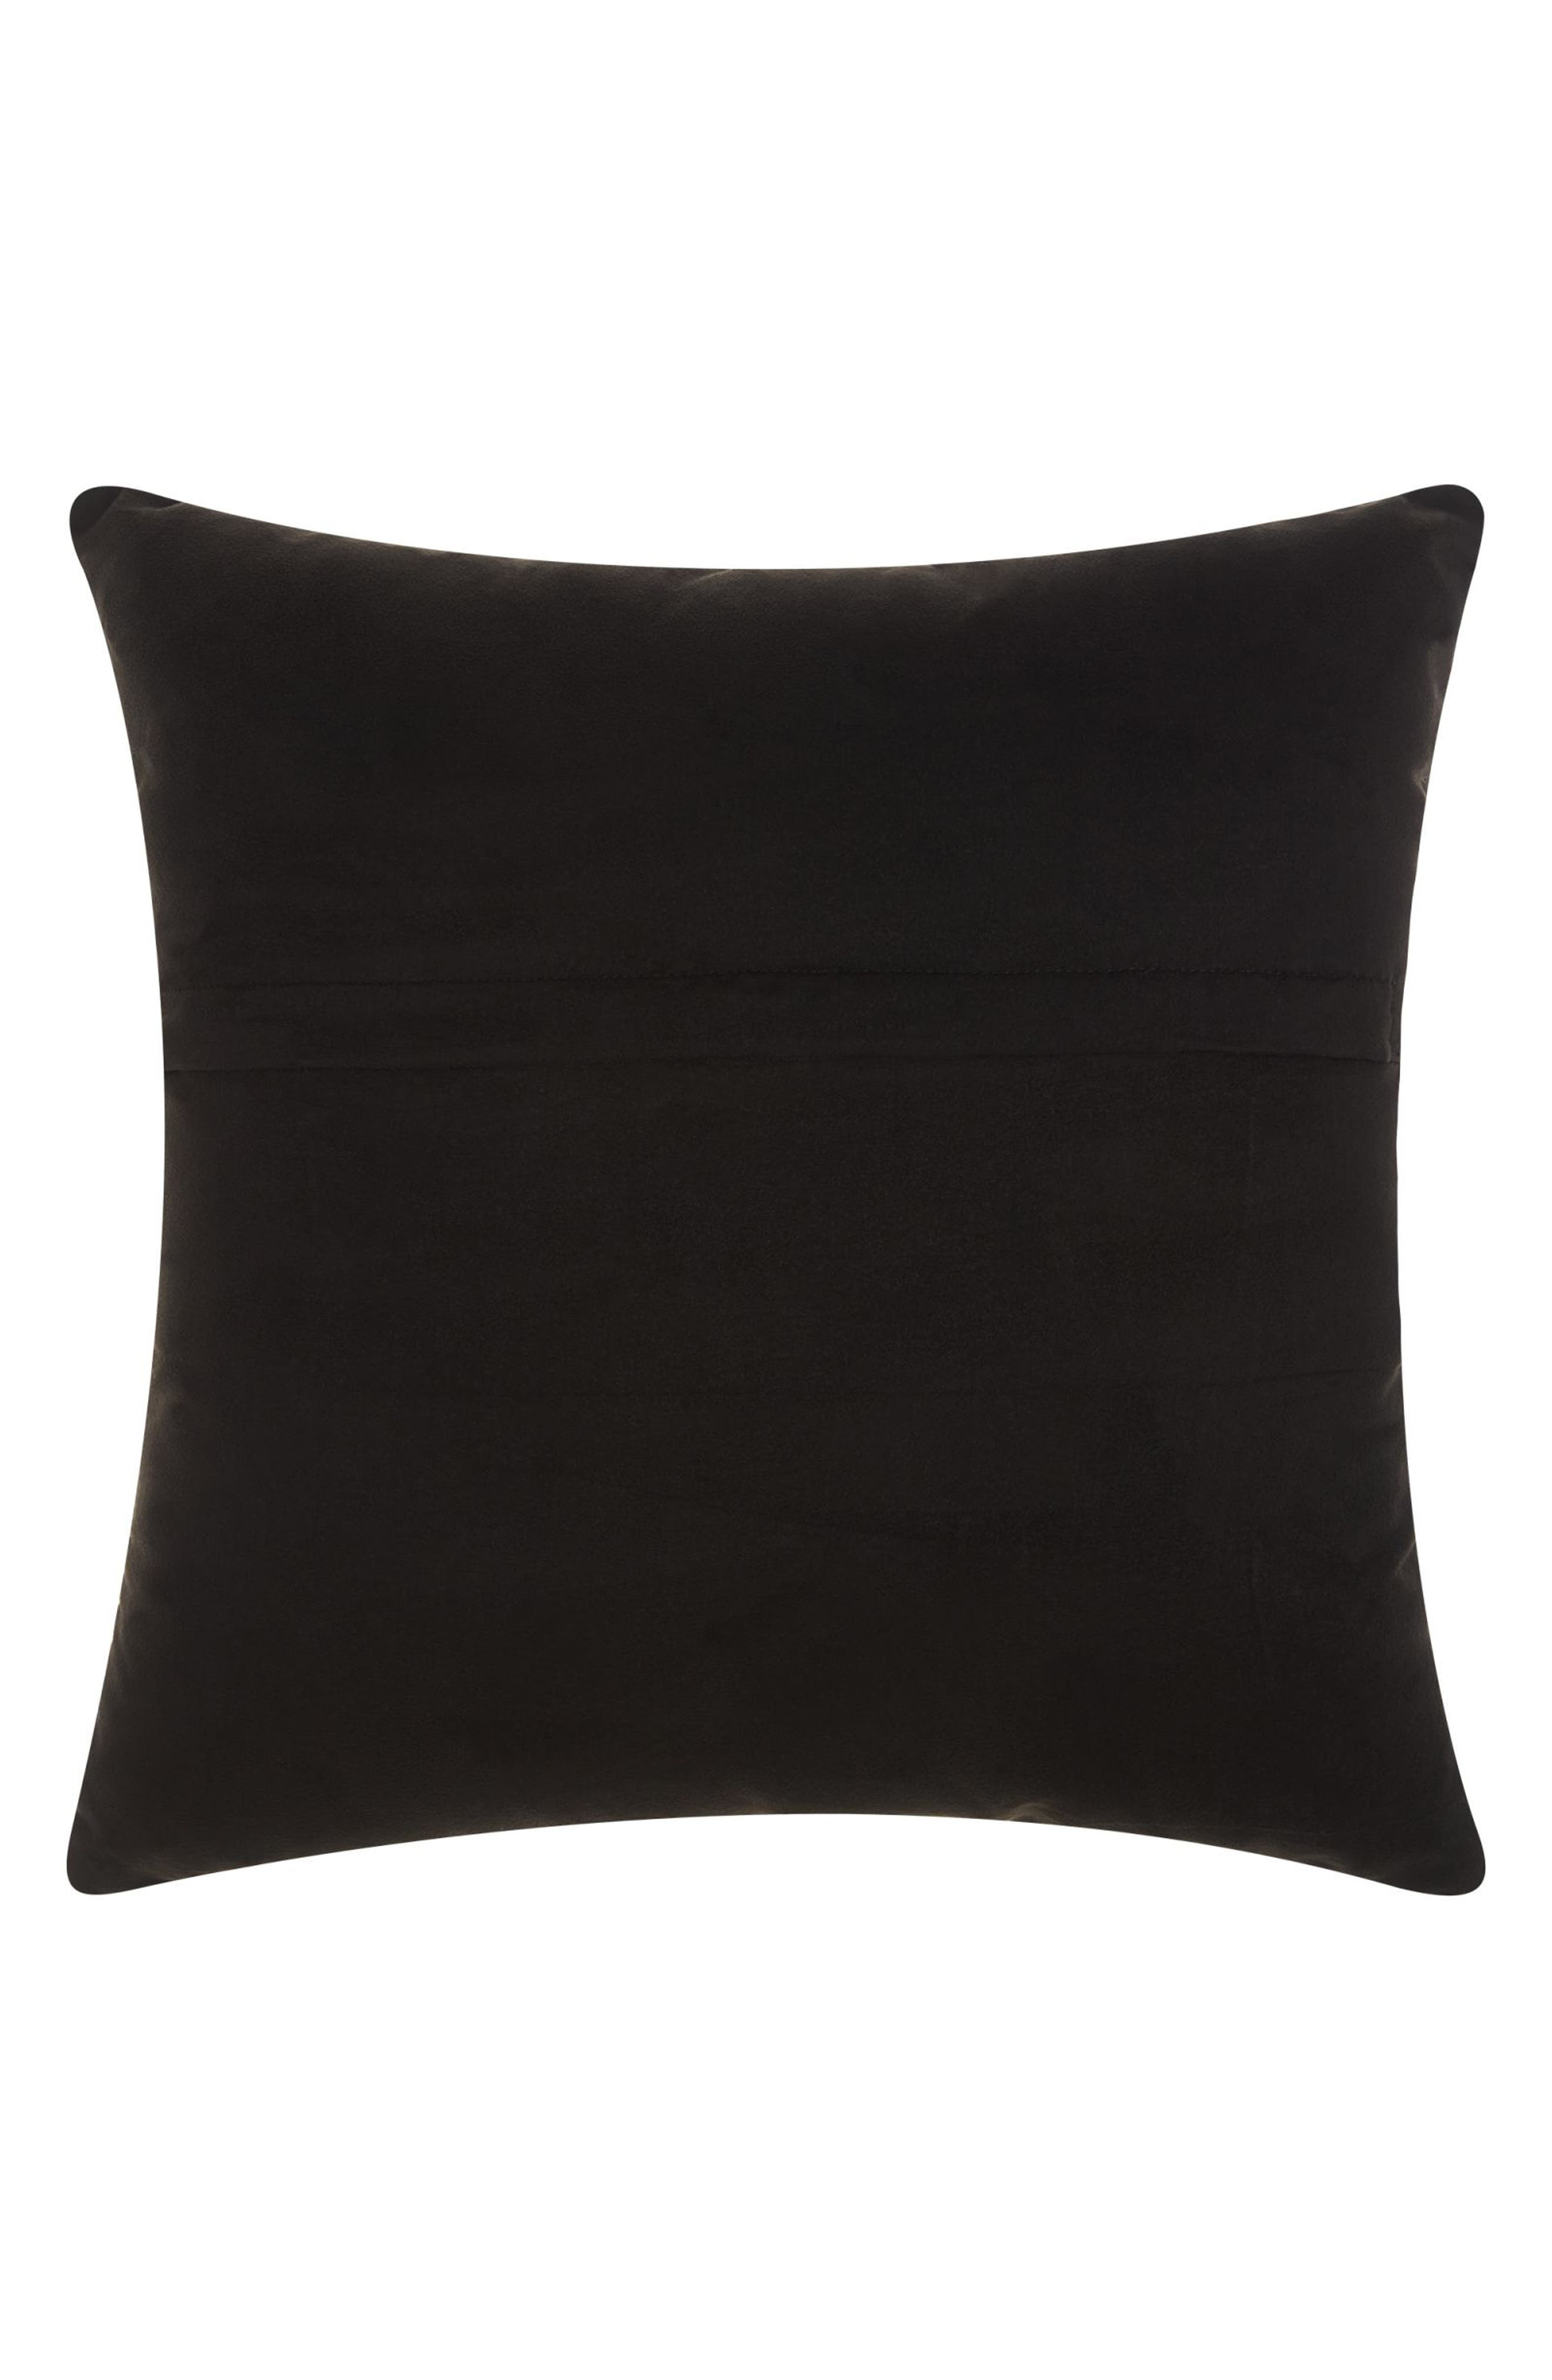 Woven Leather Accent Pillow,                             Alternate thumbnail 2, color,                             Black